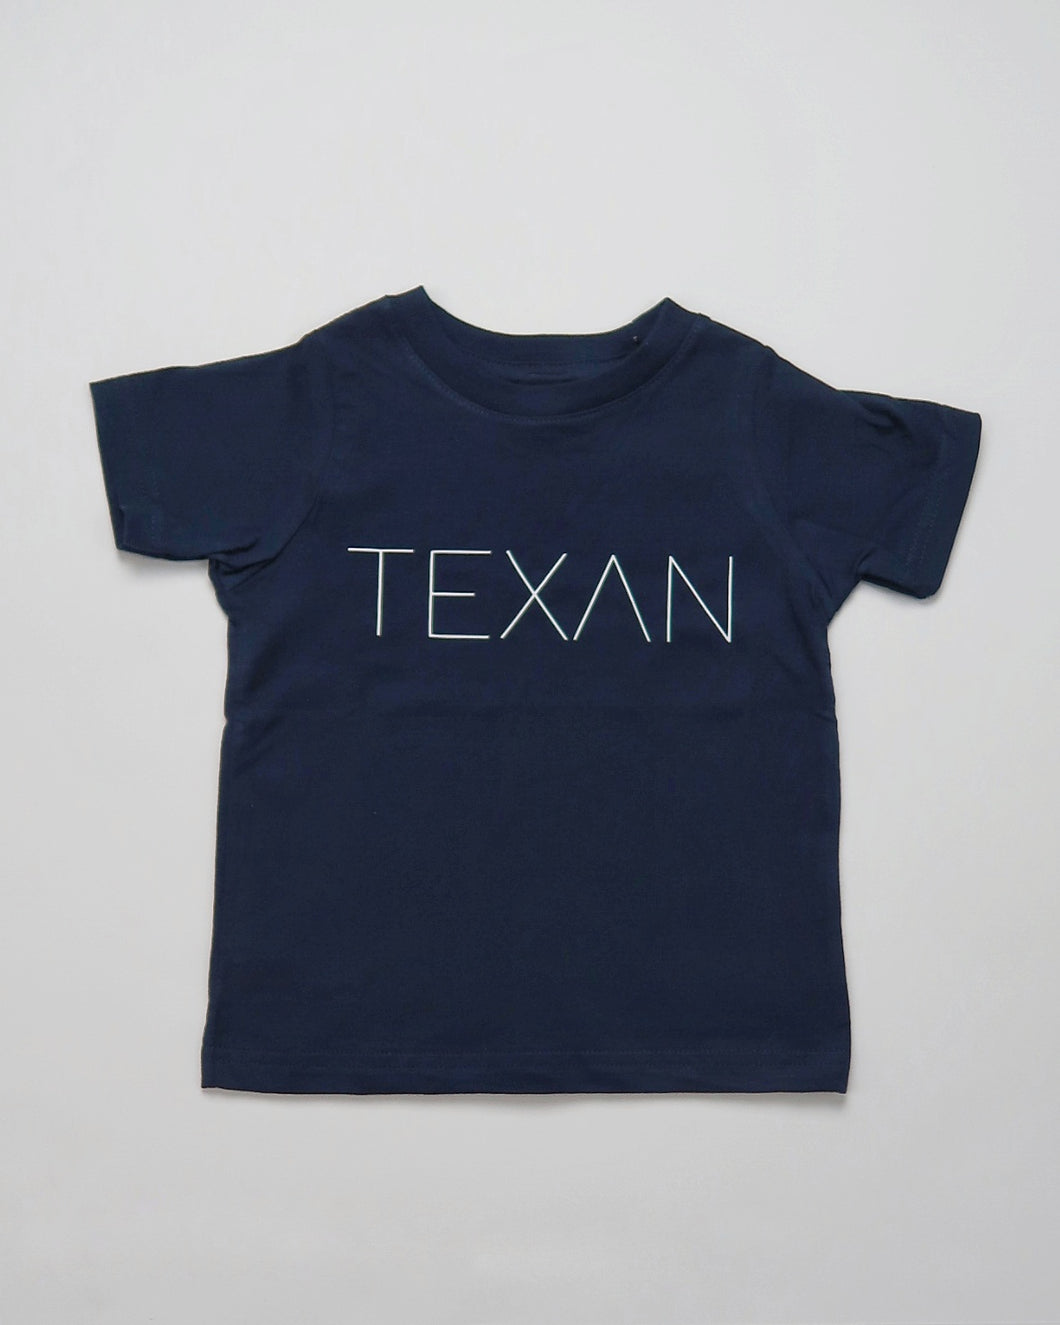 Kids Texan Pencil Tee  (Navy/White)